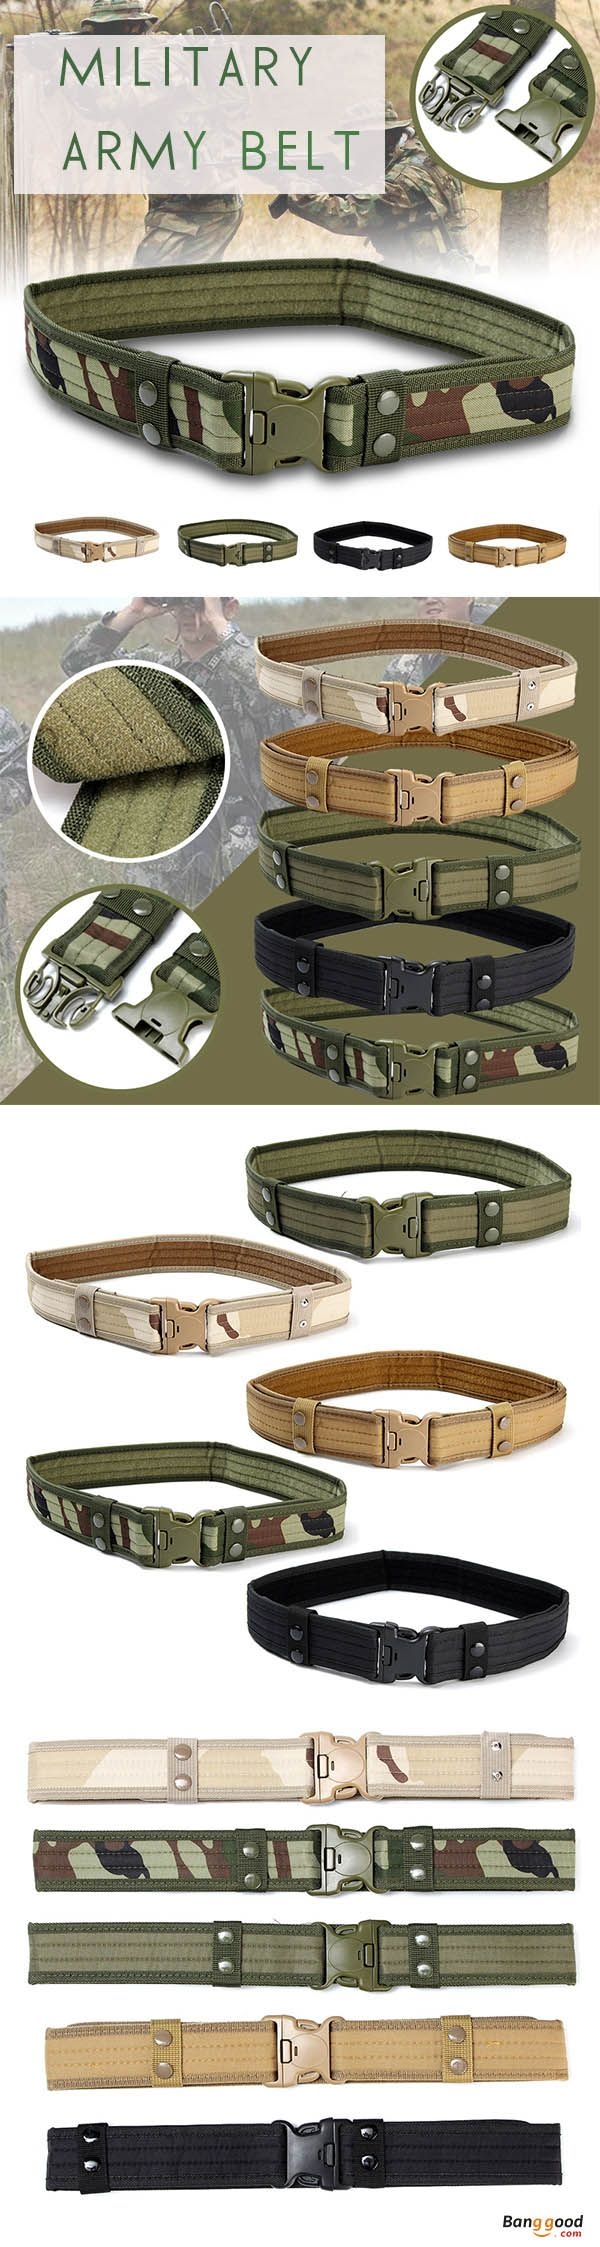 US 8.99 + Free shipping. 130CM Mens Military Army Tactical Belt Swat Combat  Hunting Outdoor 231d970c5db6